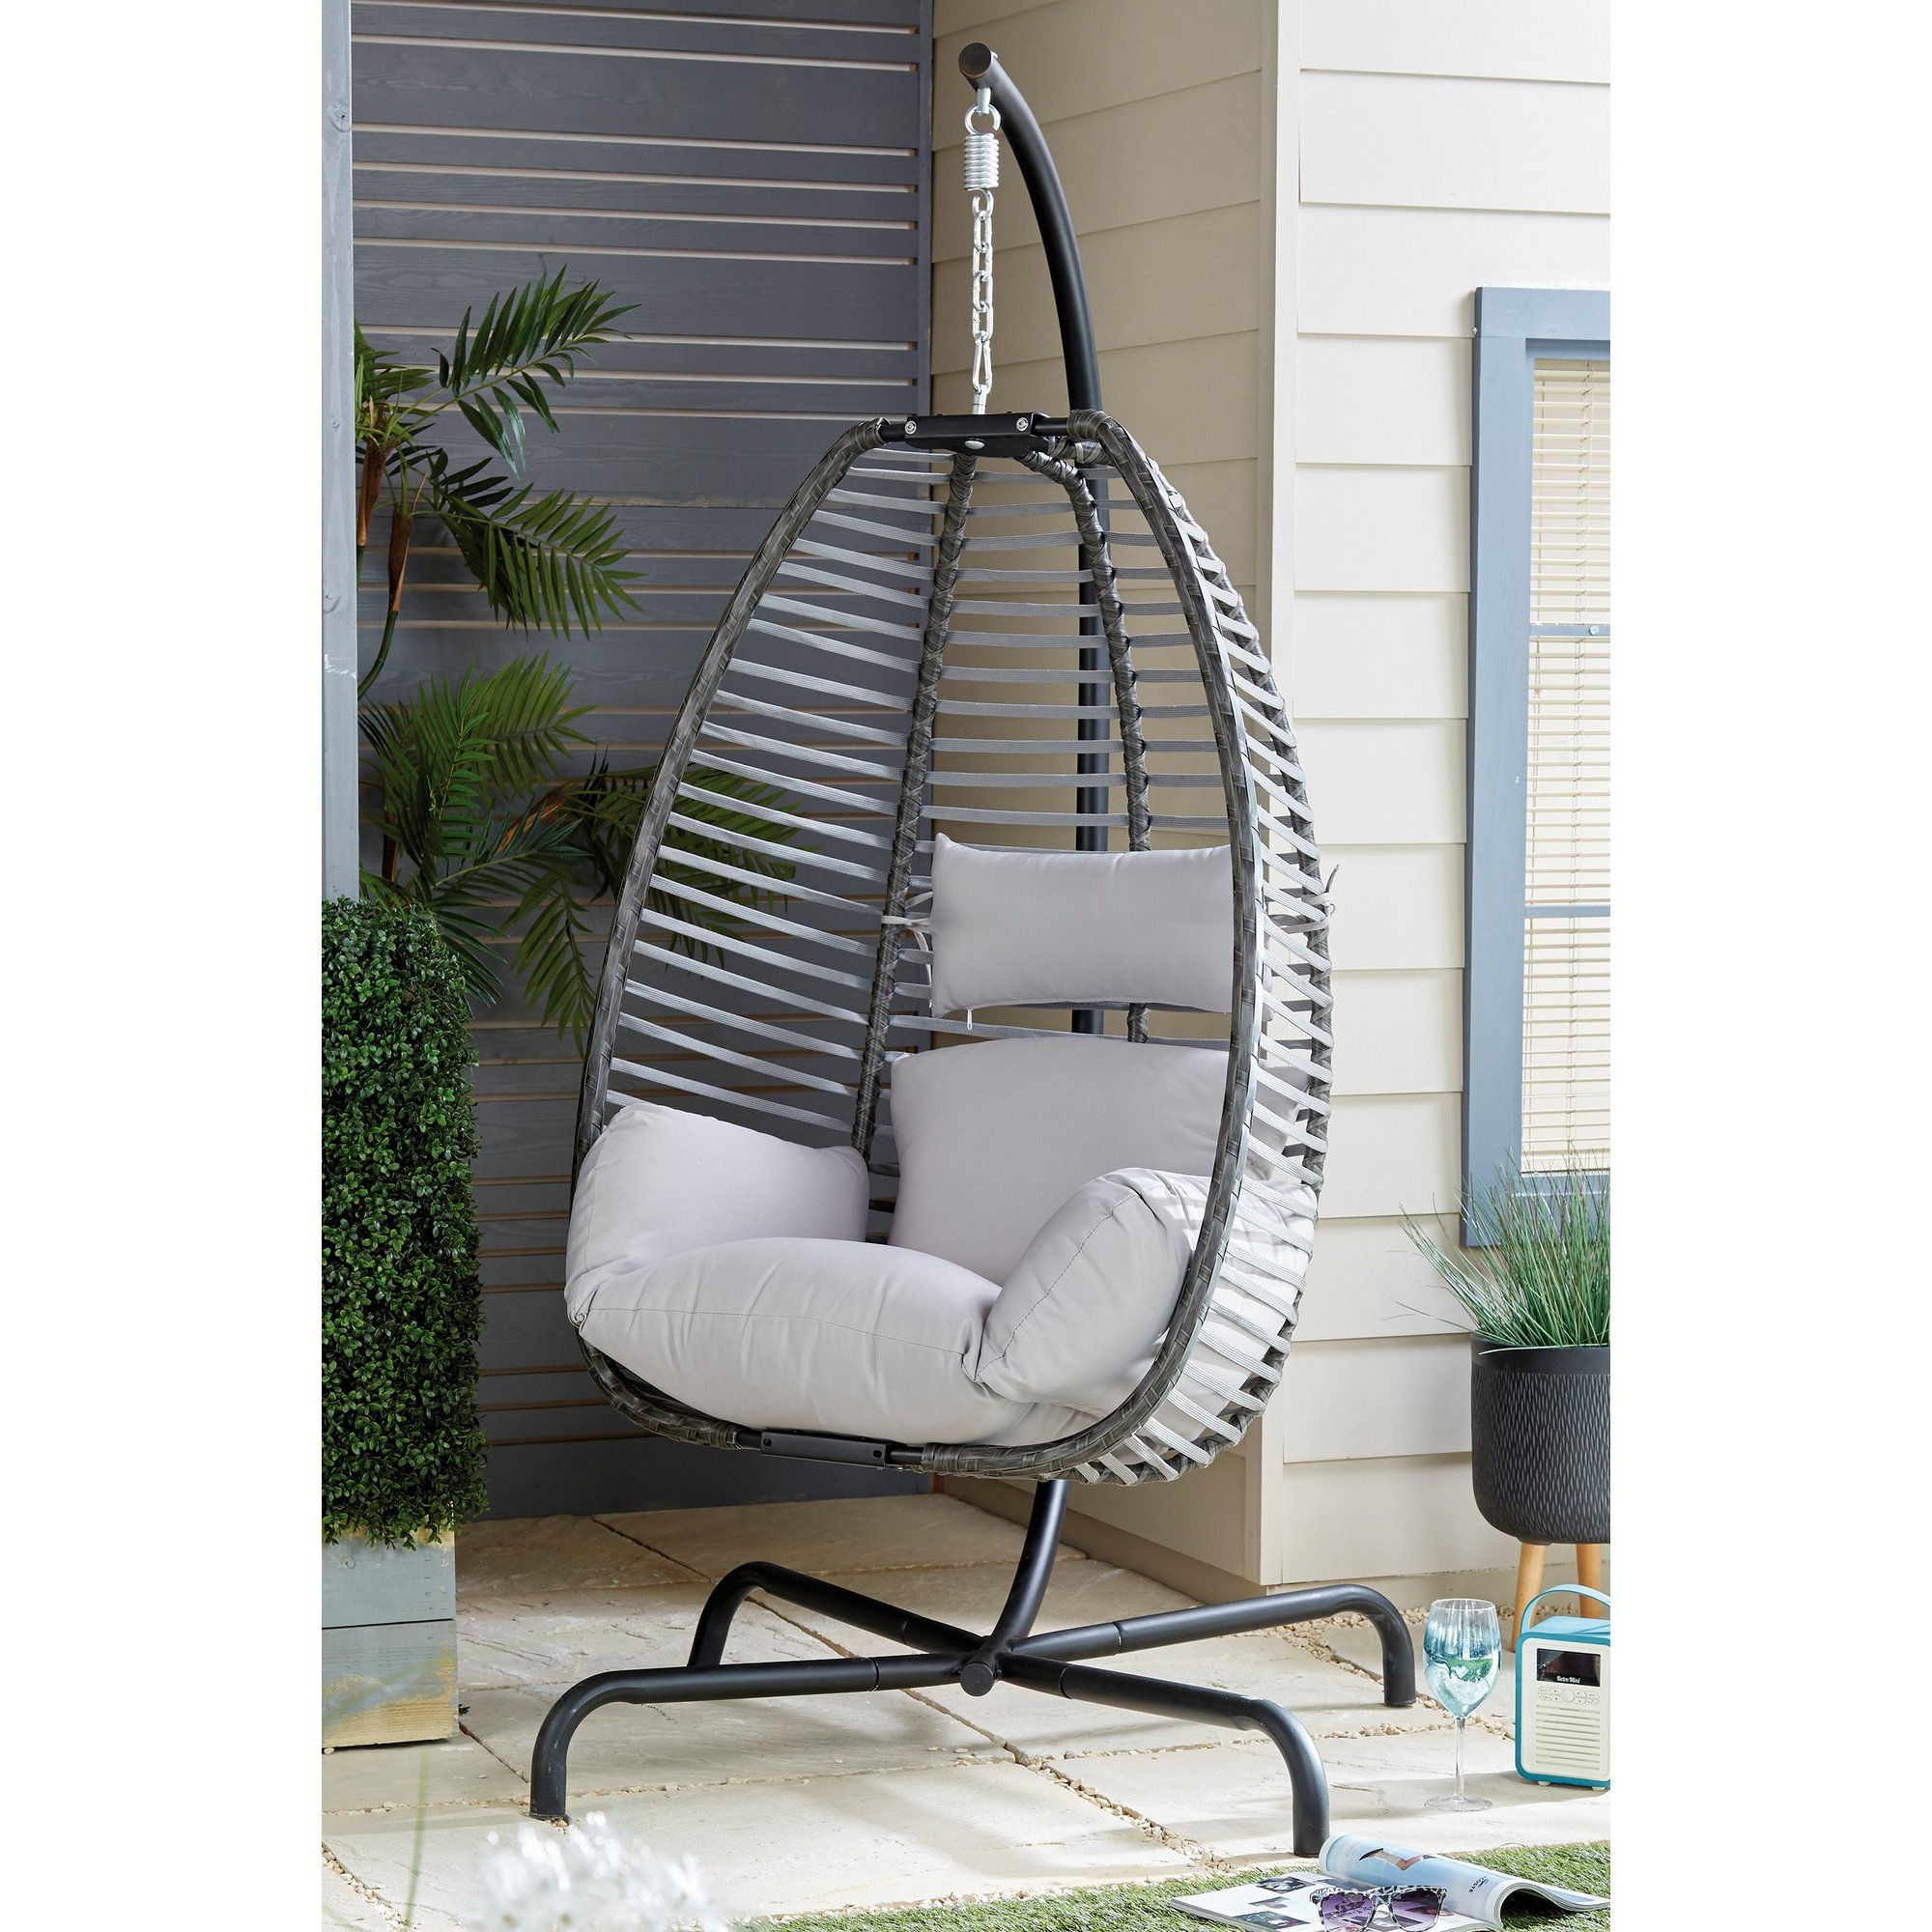 Image of Deluxe Hanging Chair